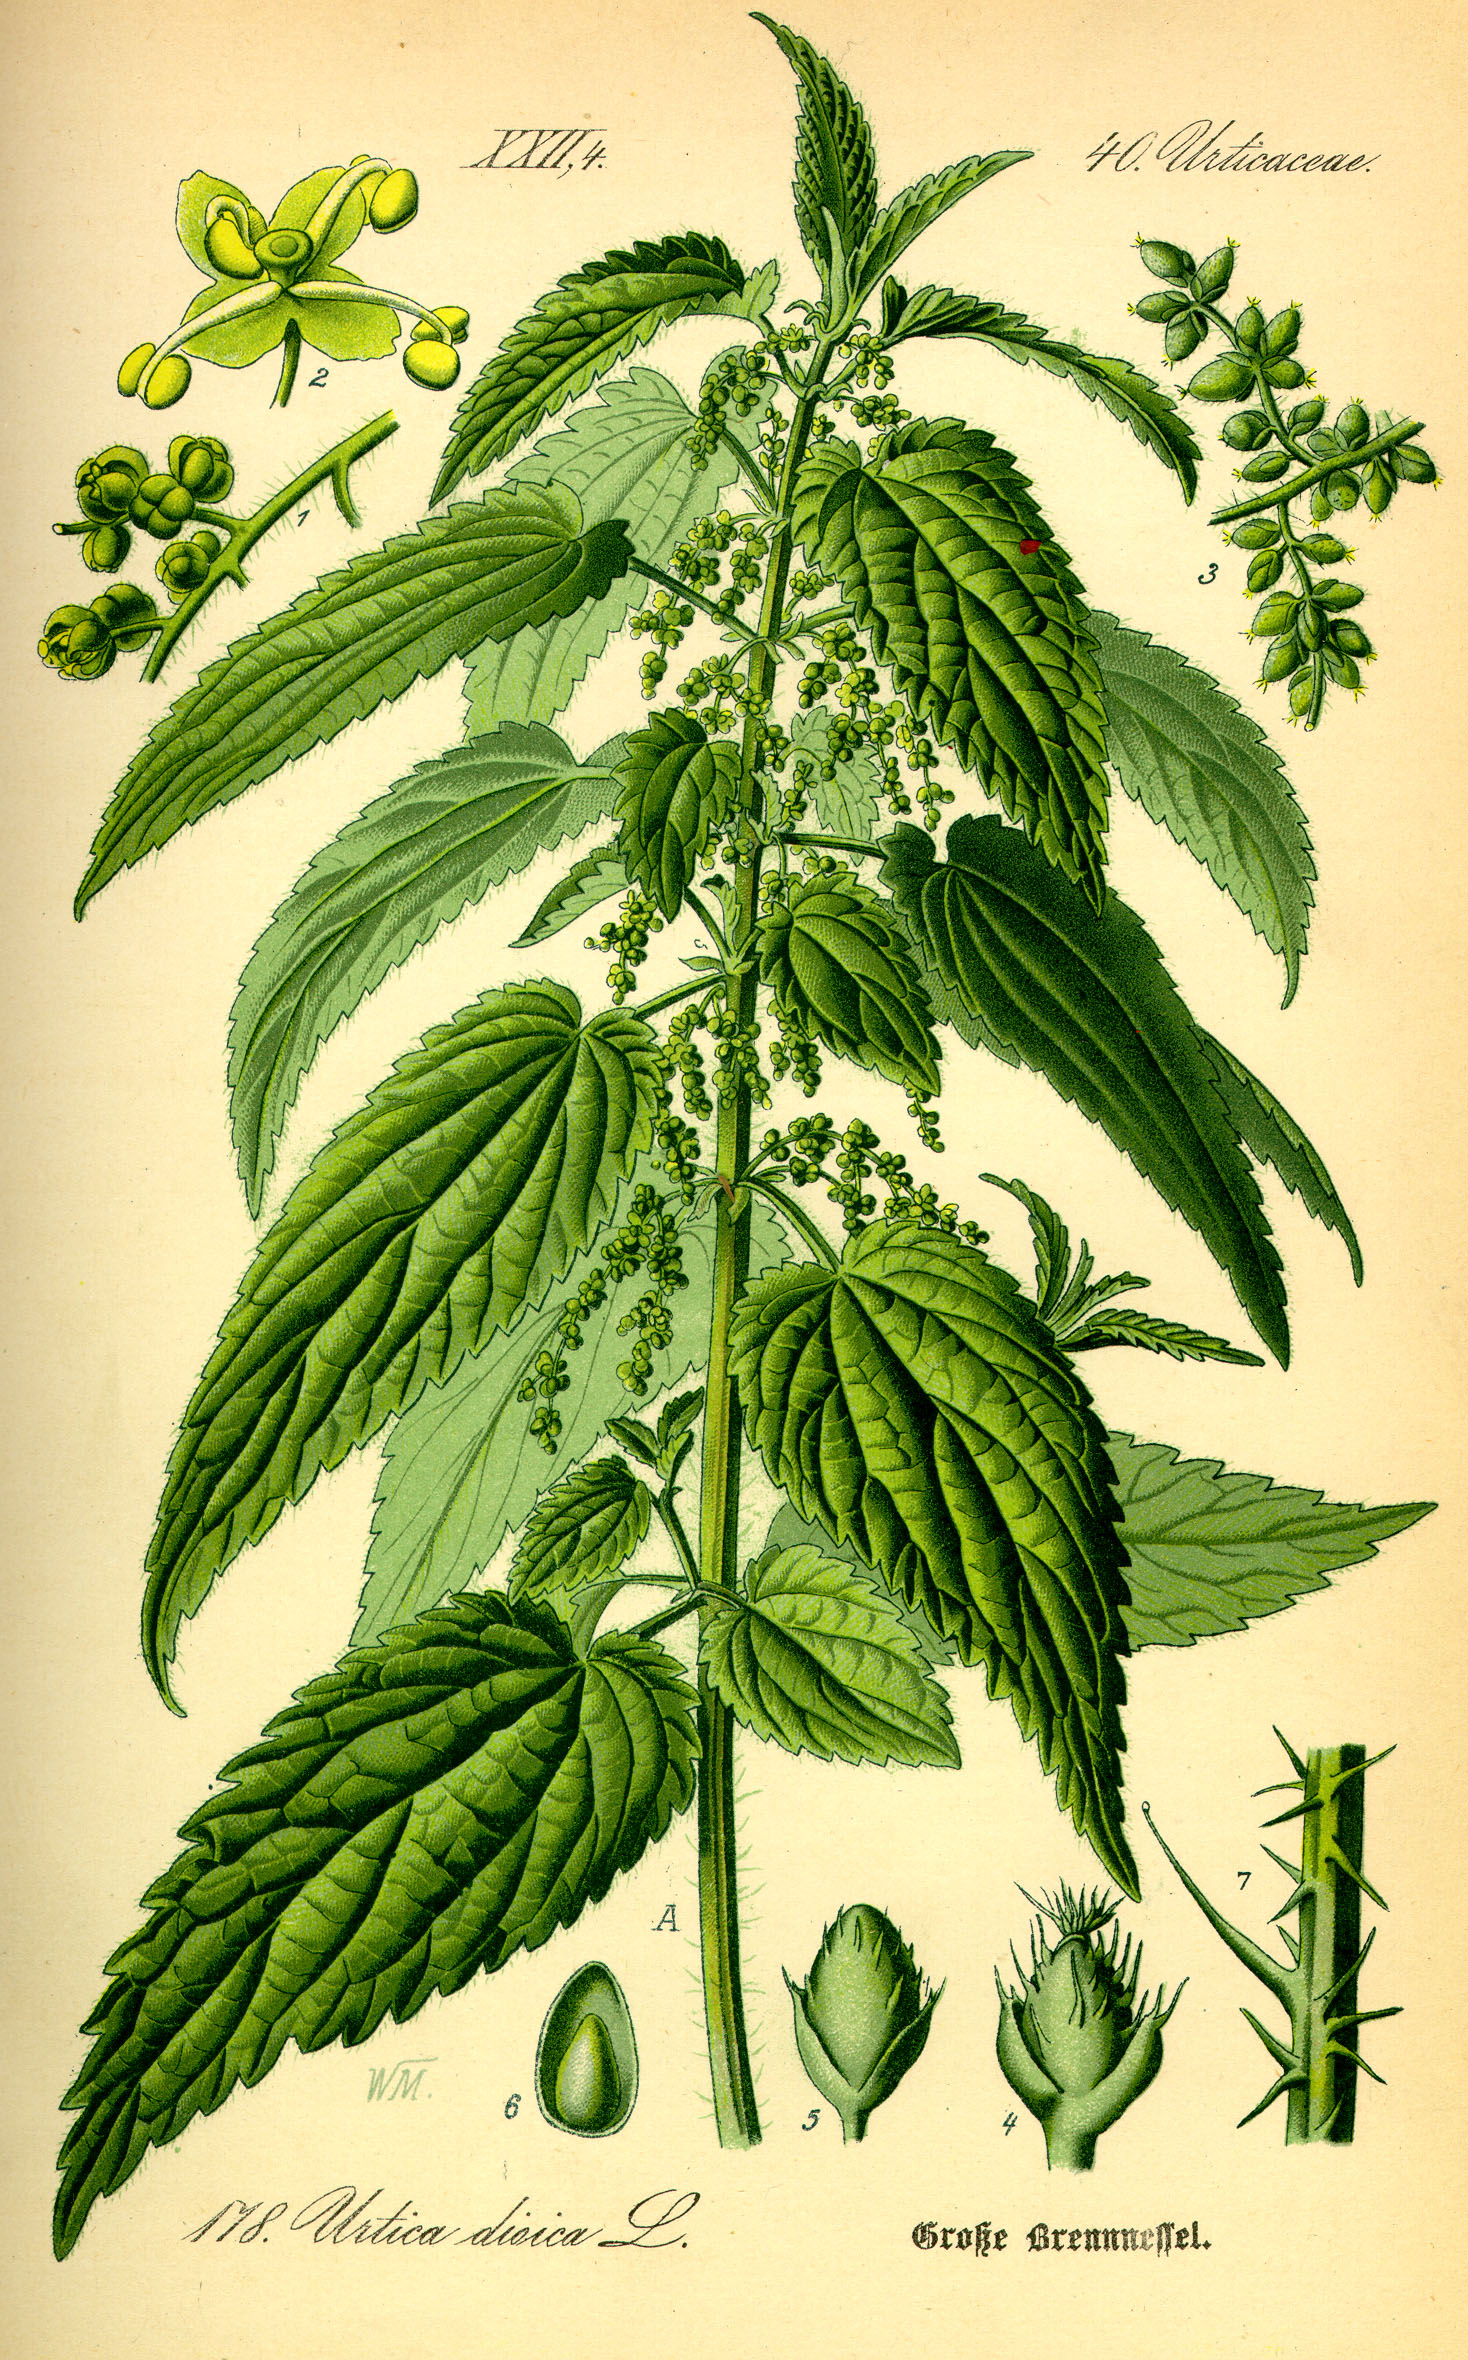 Urtica dioica stinging nettle